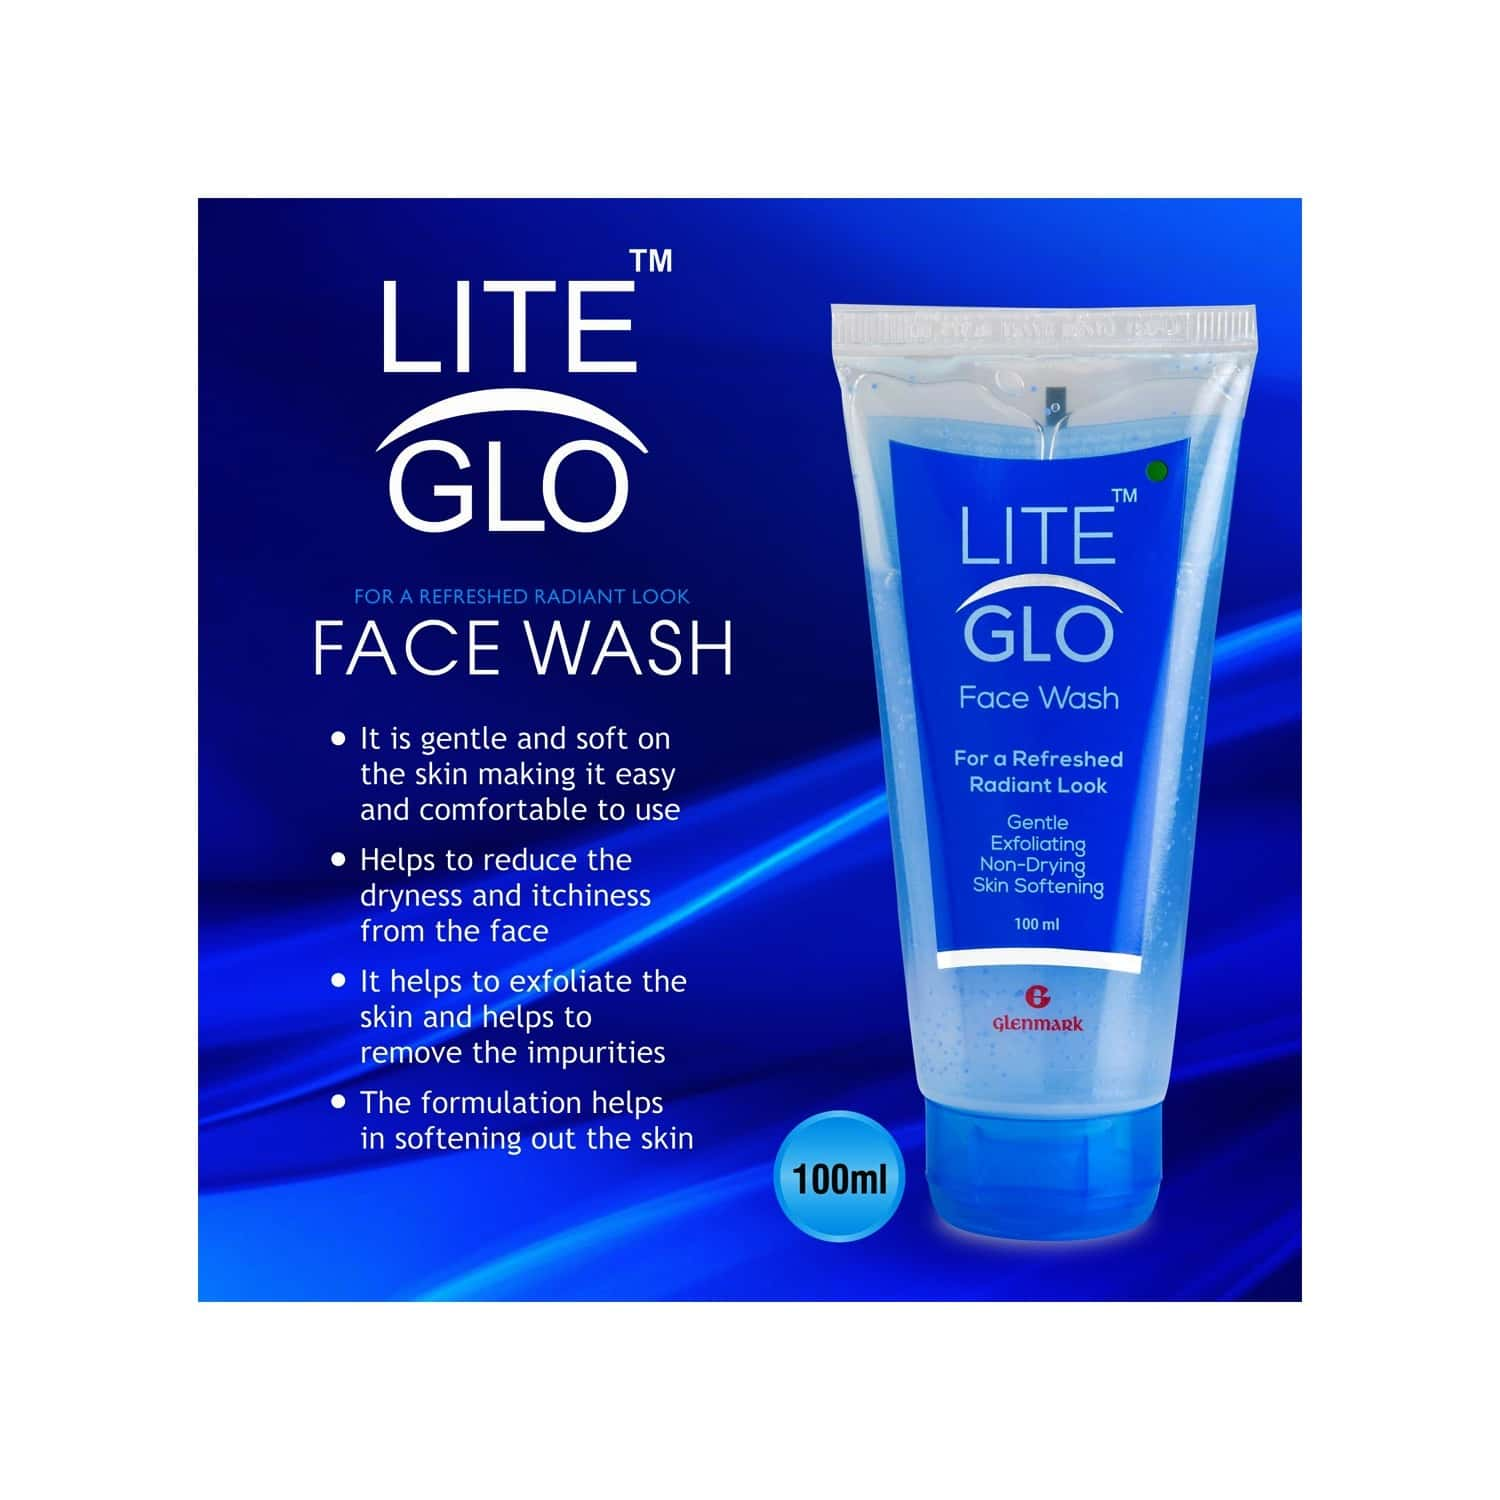 Lite Glo Face Wash Tube Of 100 Ml